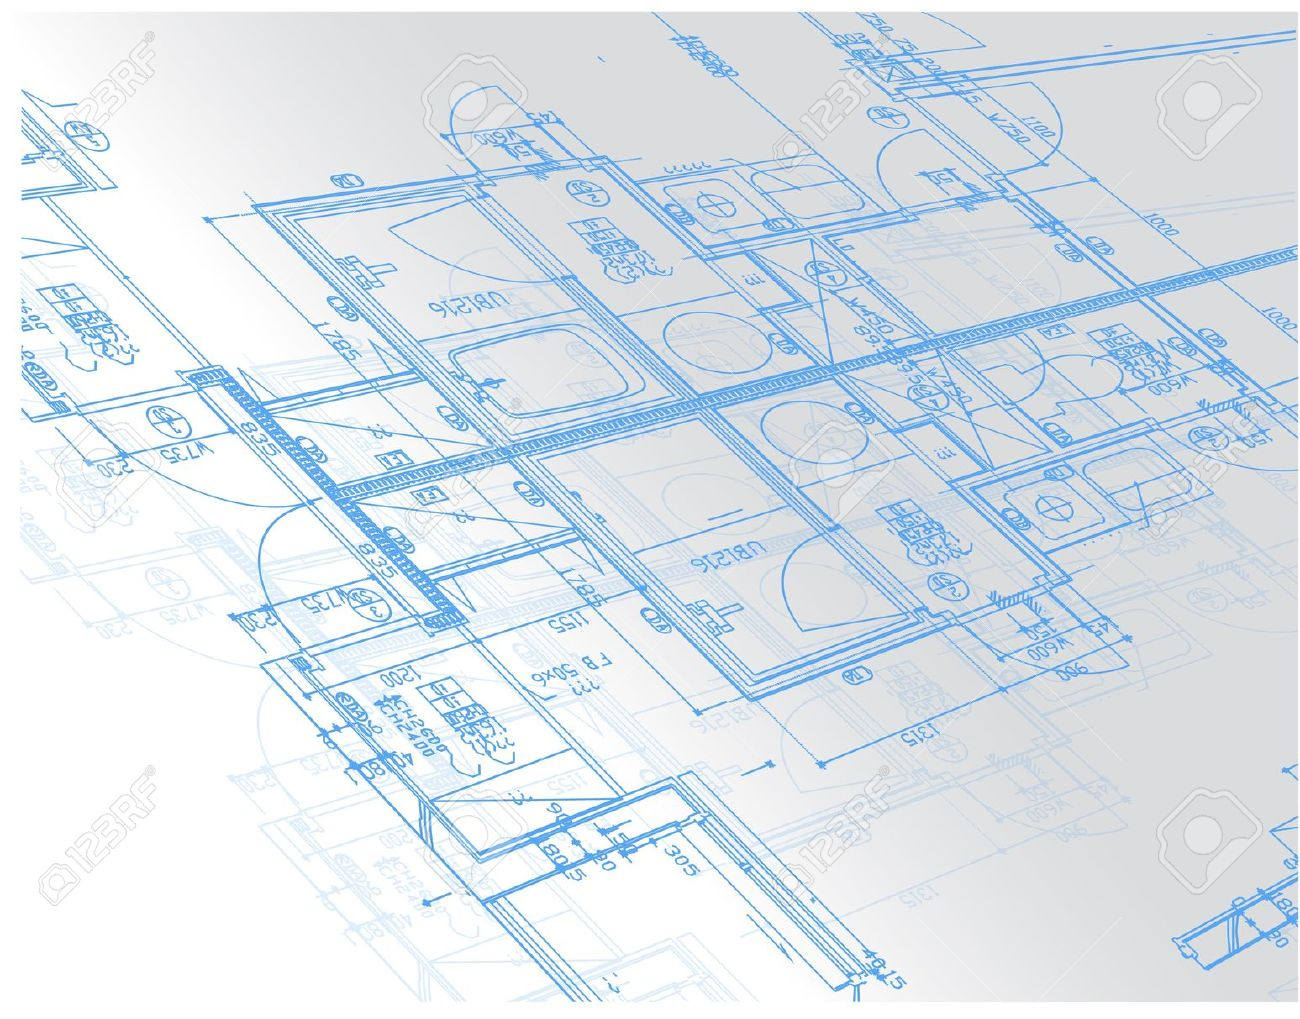 9845967 sample of architectural blueprints over a light gray 9845967 sample of architectural blueprints over a light gray background blueprint stock vector malvernweather Gallery